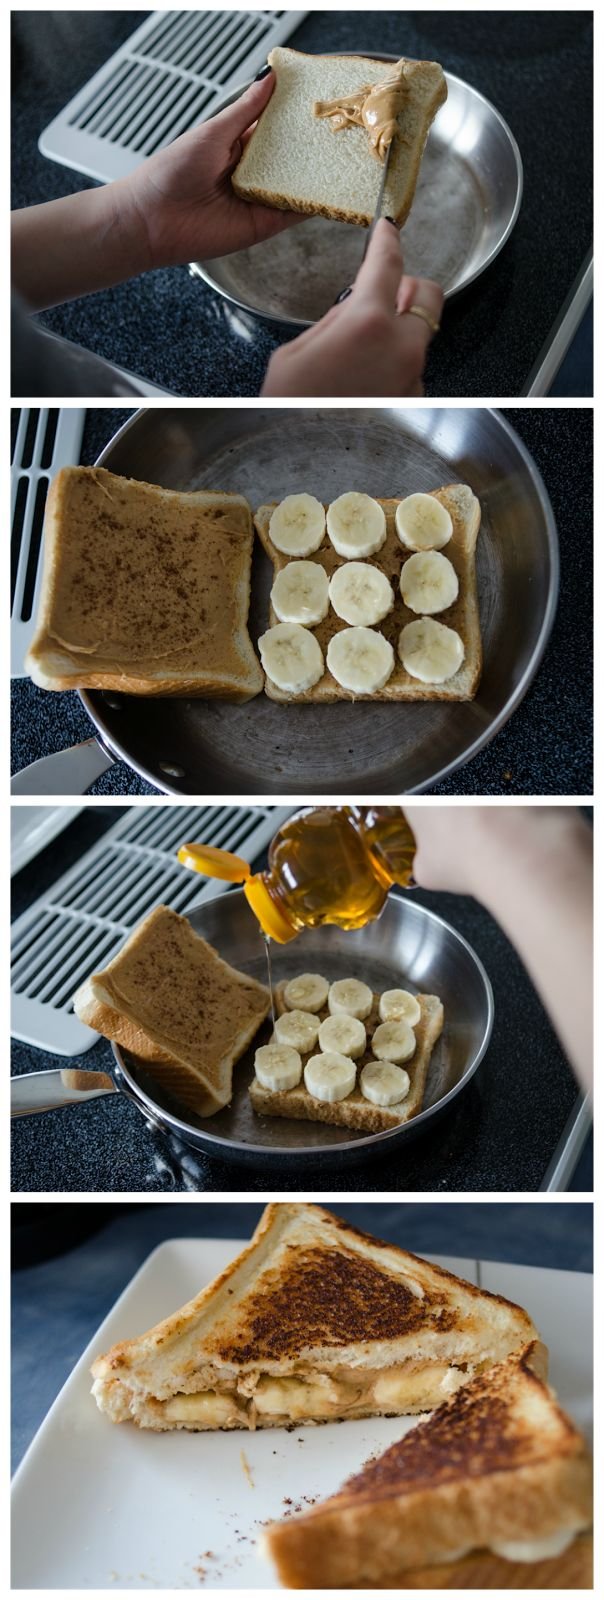 PB, Banana, Cinnamon & Honey Grilled sandwich